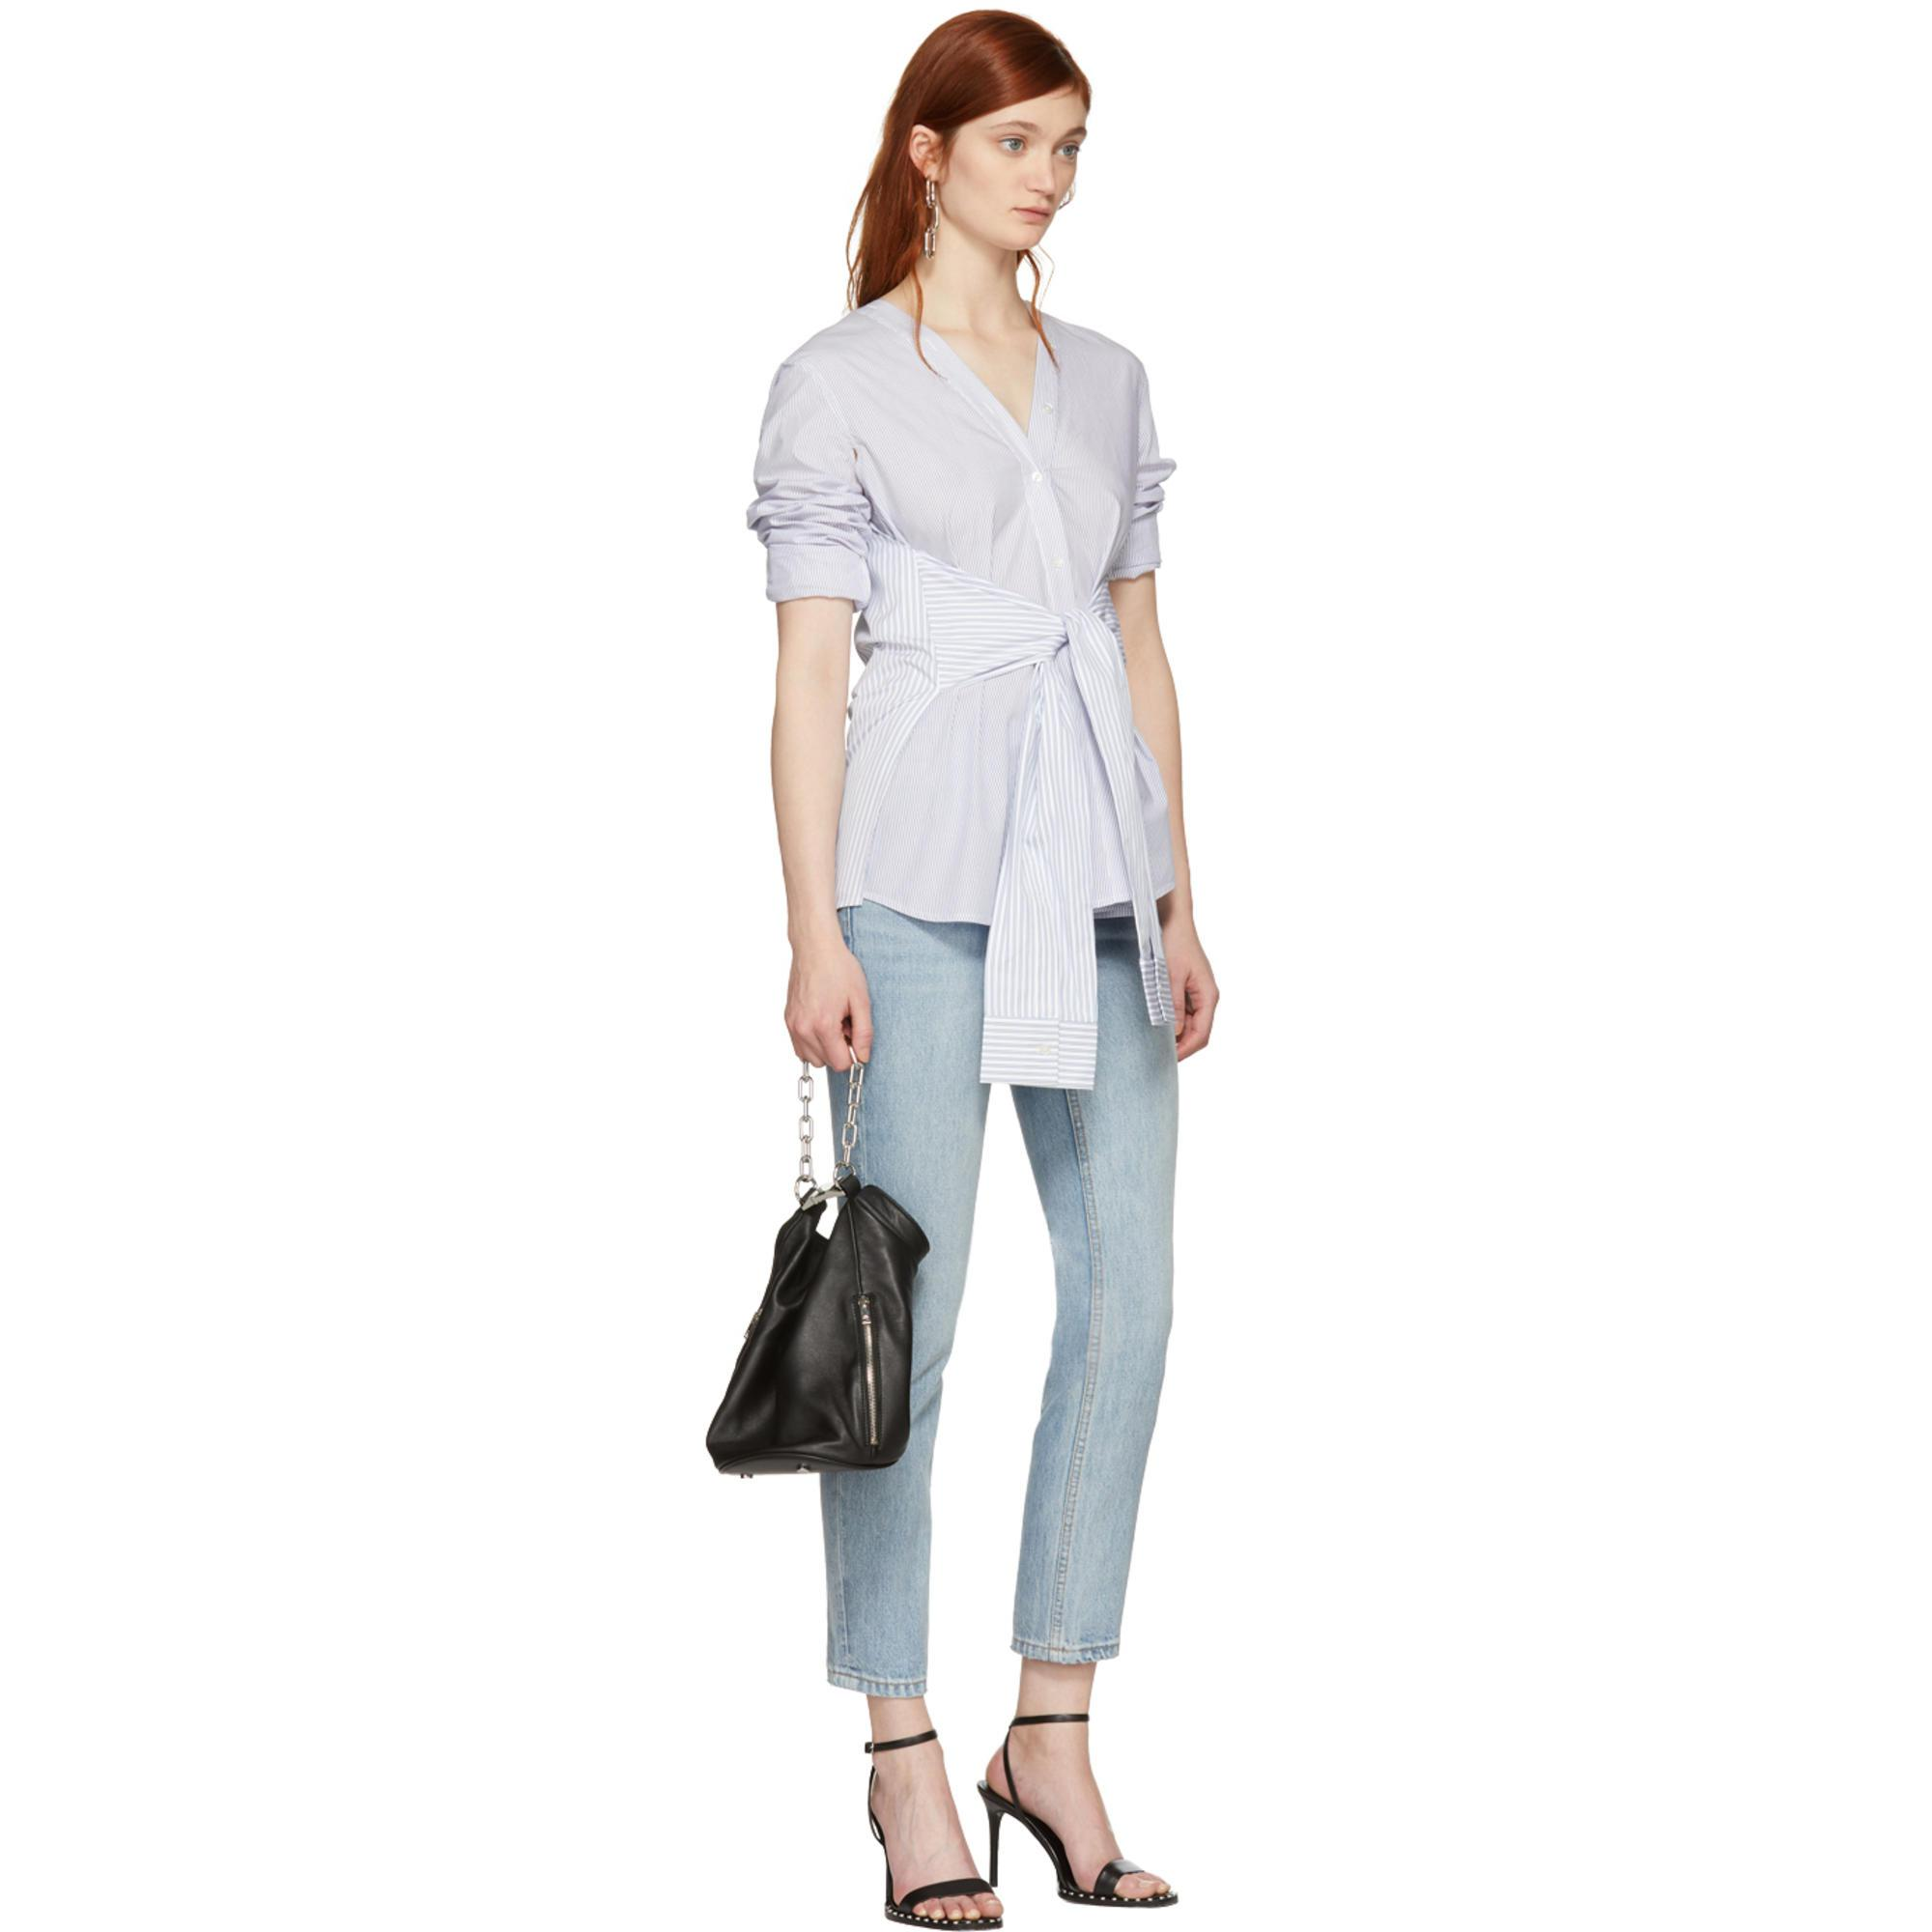 Sale Websites White and Blue Multi Stripe Tie Shirt Alexander Wang Clearance Pre Order Discount Codes Shopping Online Clearance Manchester Great Sale wsPzPjnJ